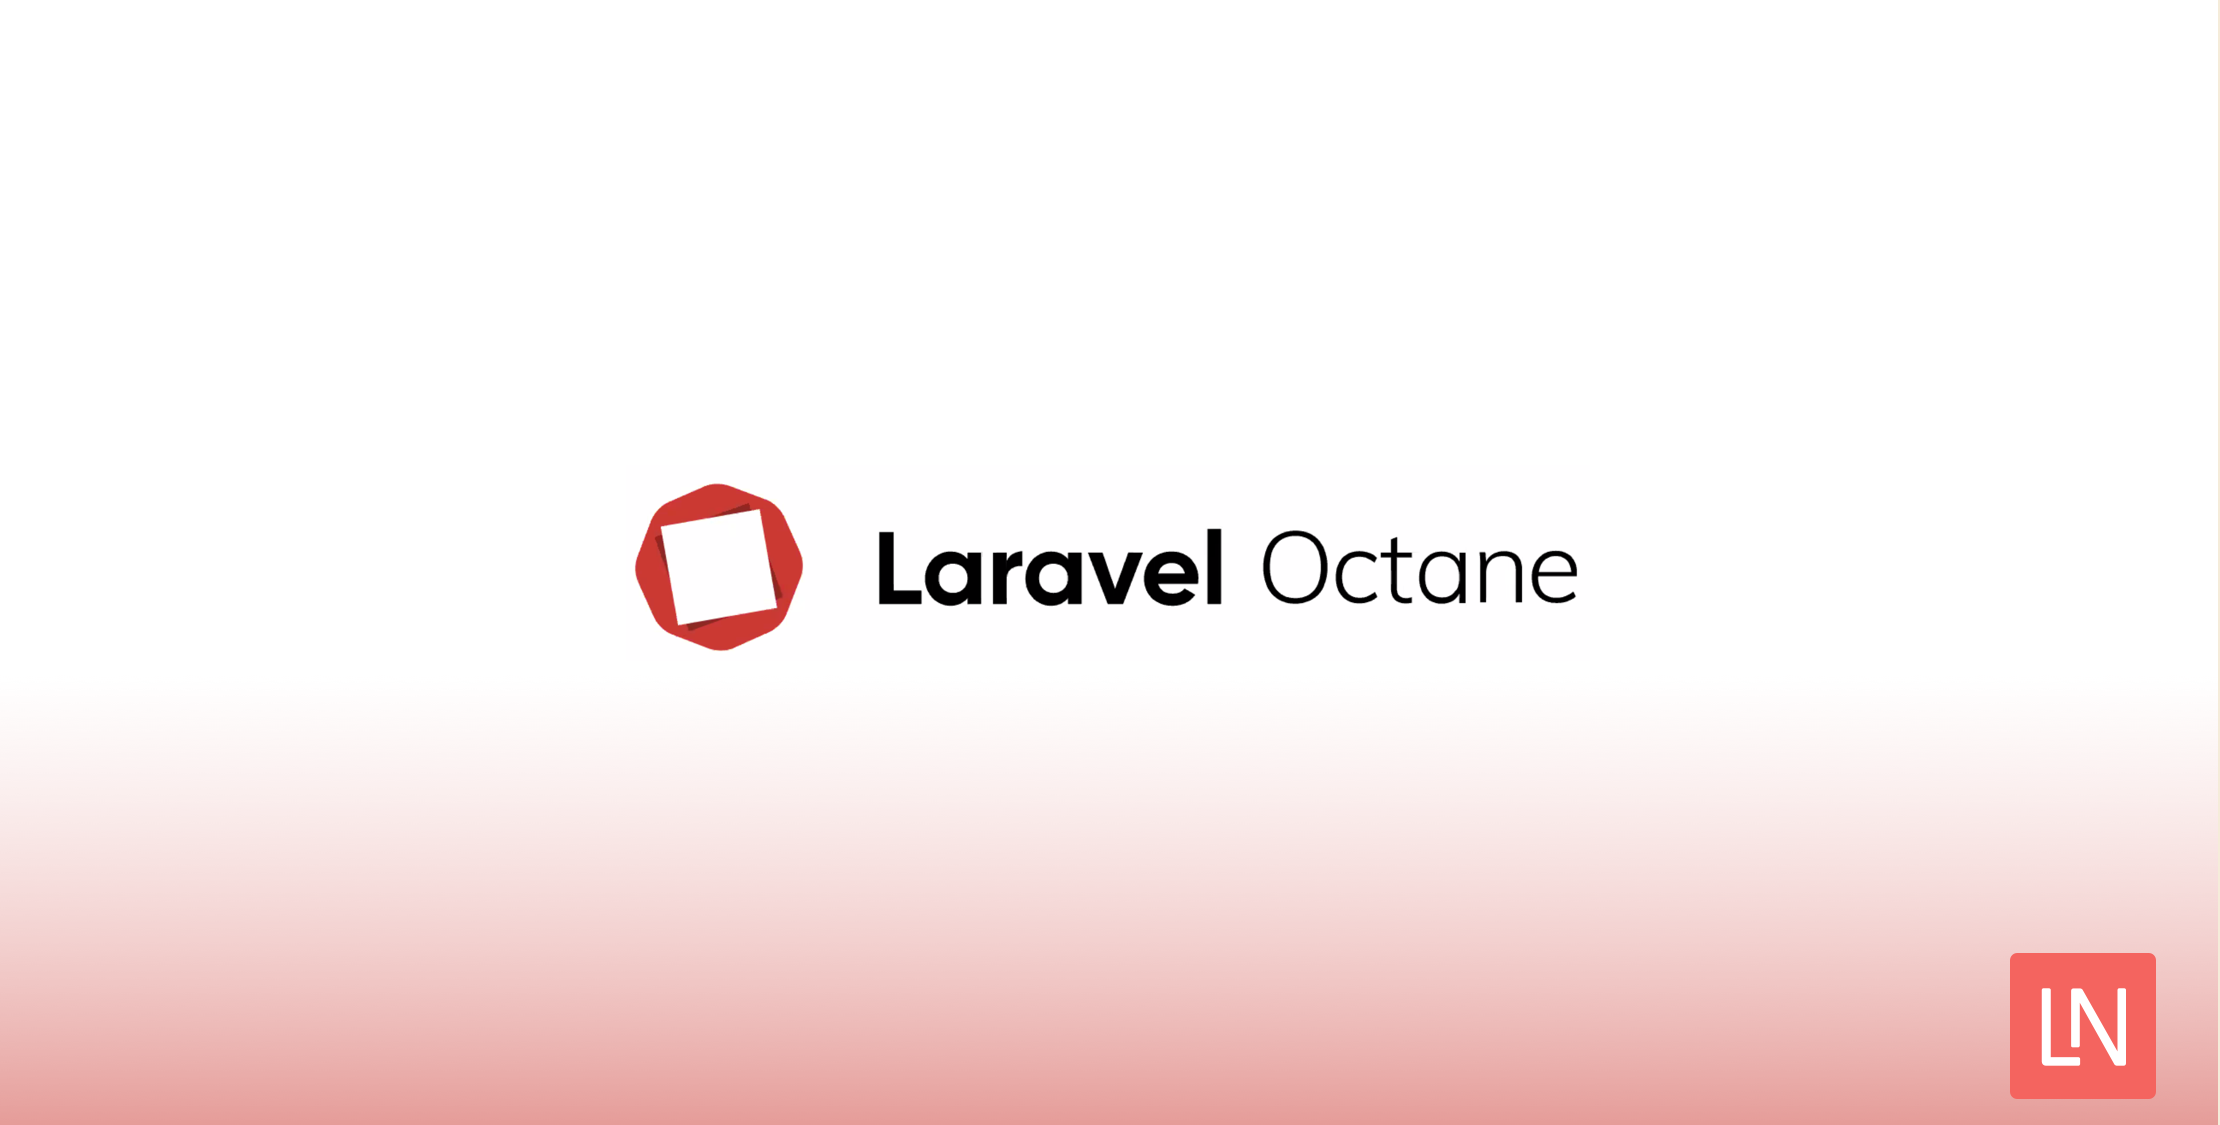 laravel-octane-featured-1617668465.png